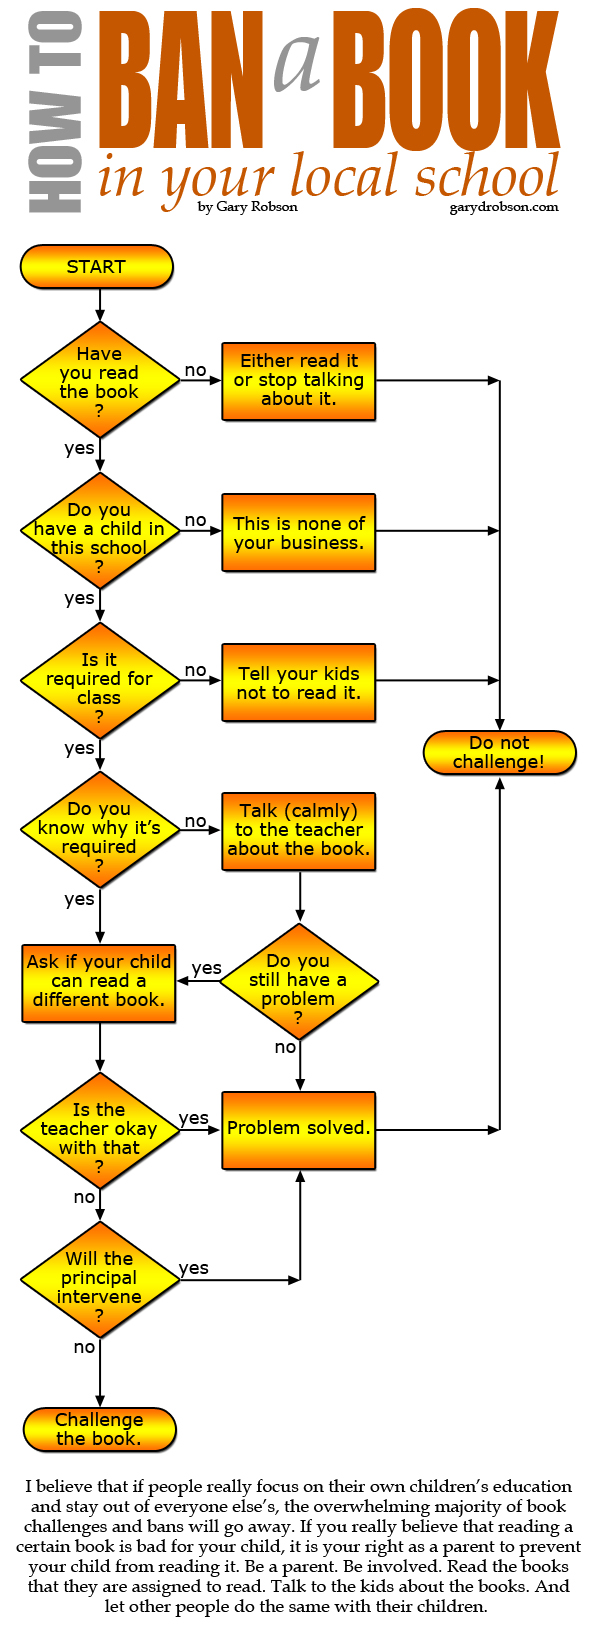 How to Ban a Book